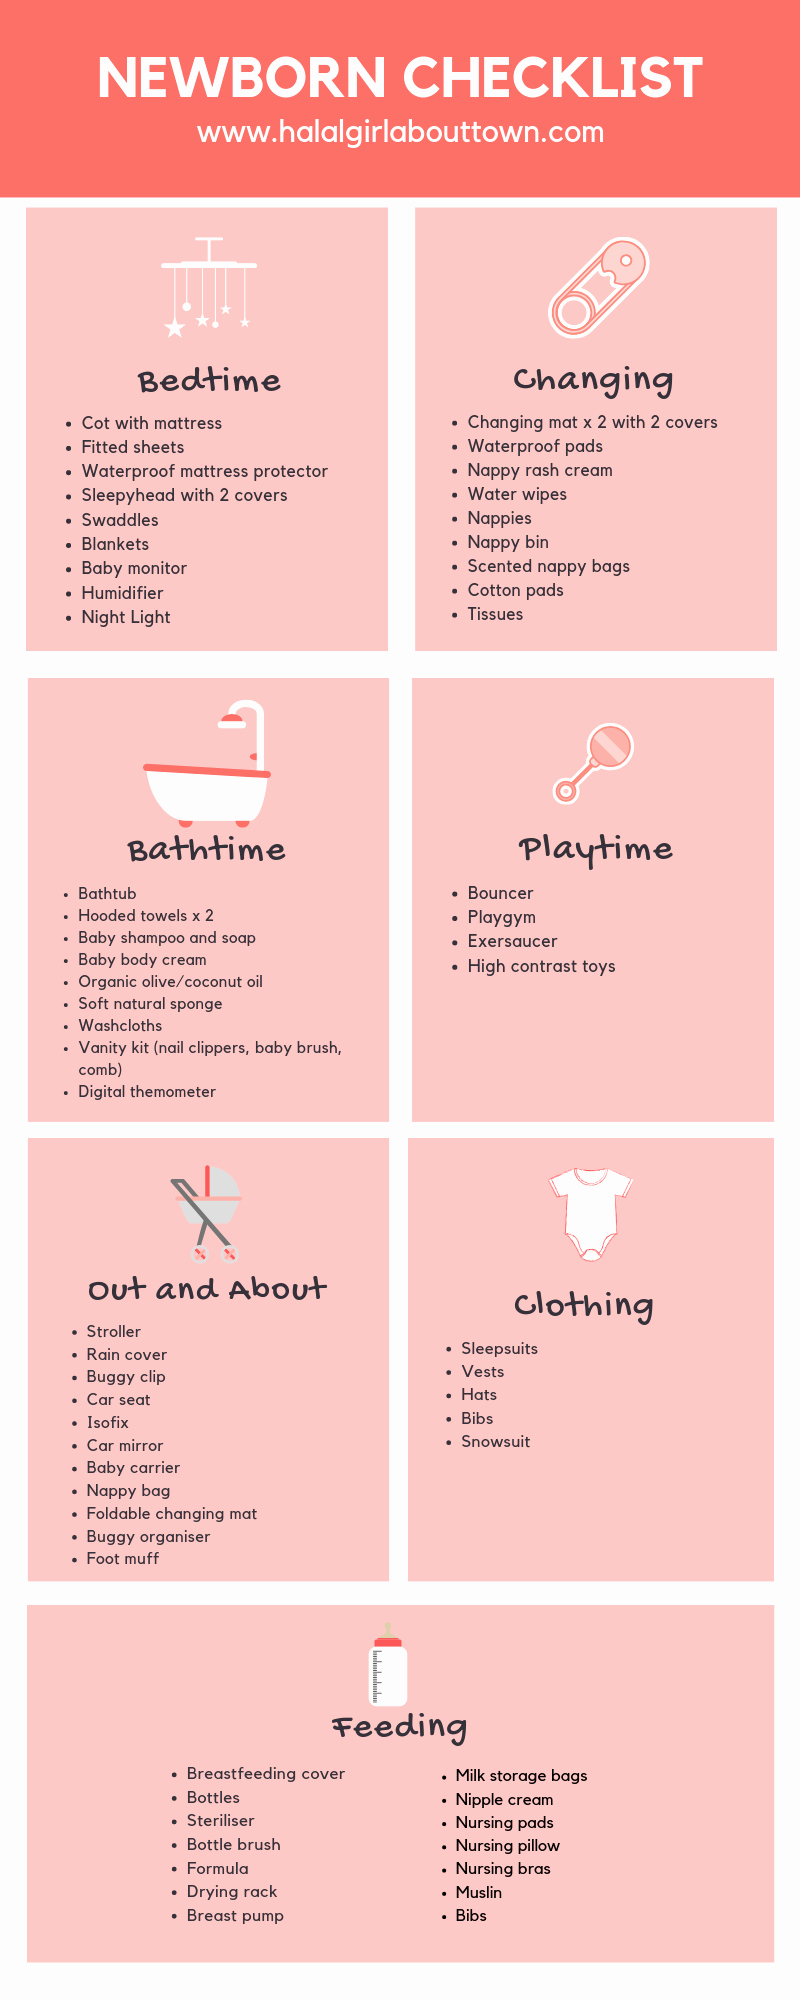 Checklist for New Baby Awesome Newborn Baby Checklist Halal Girl About town